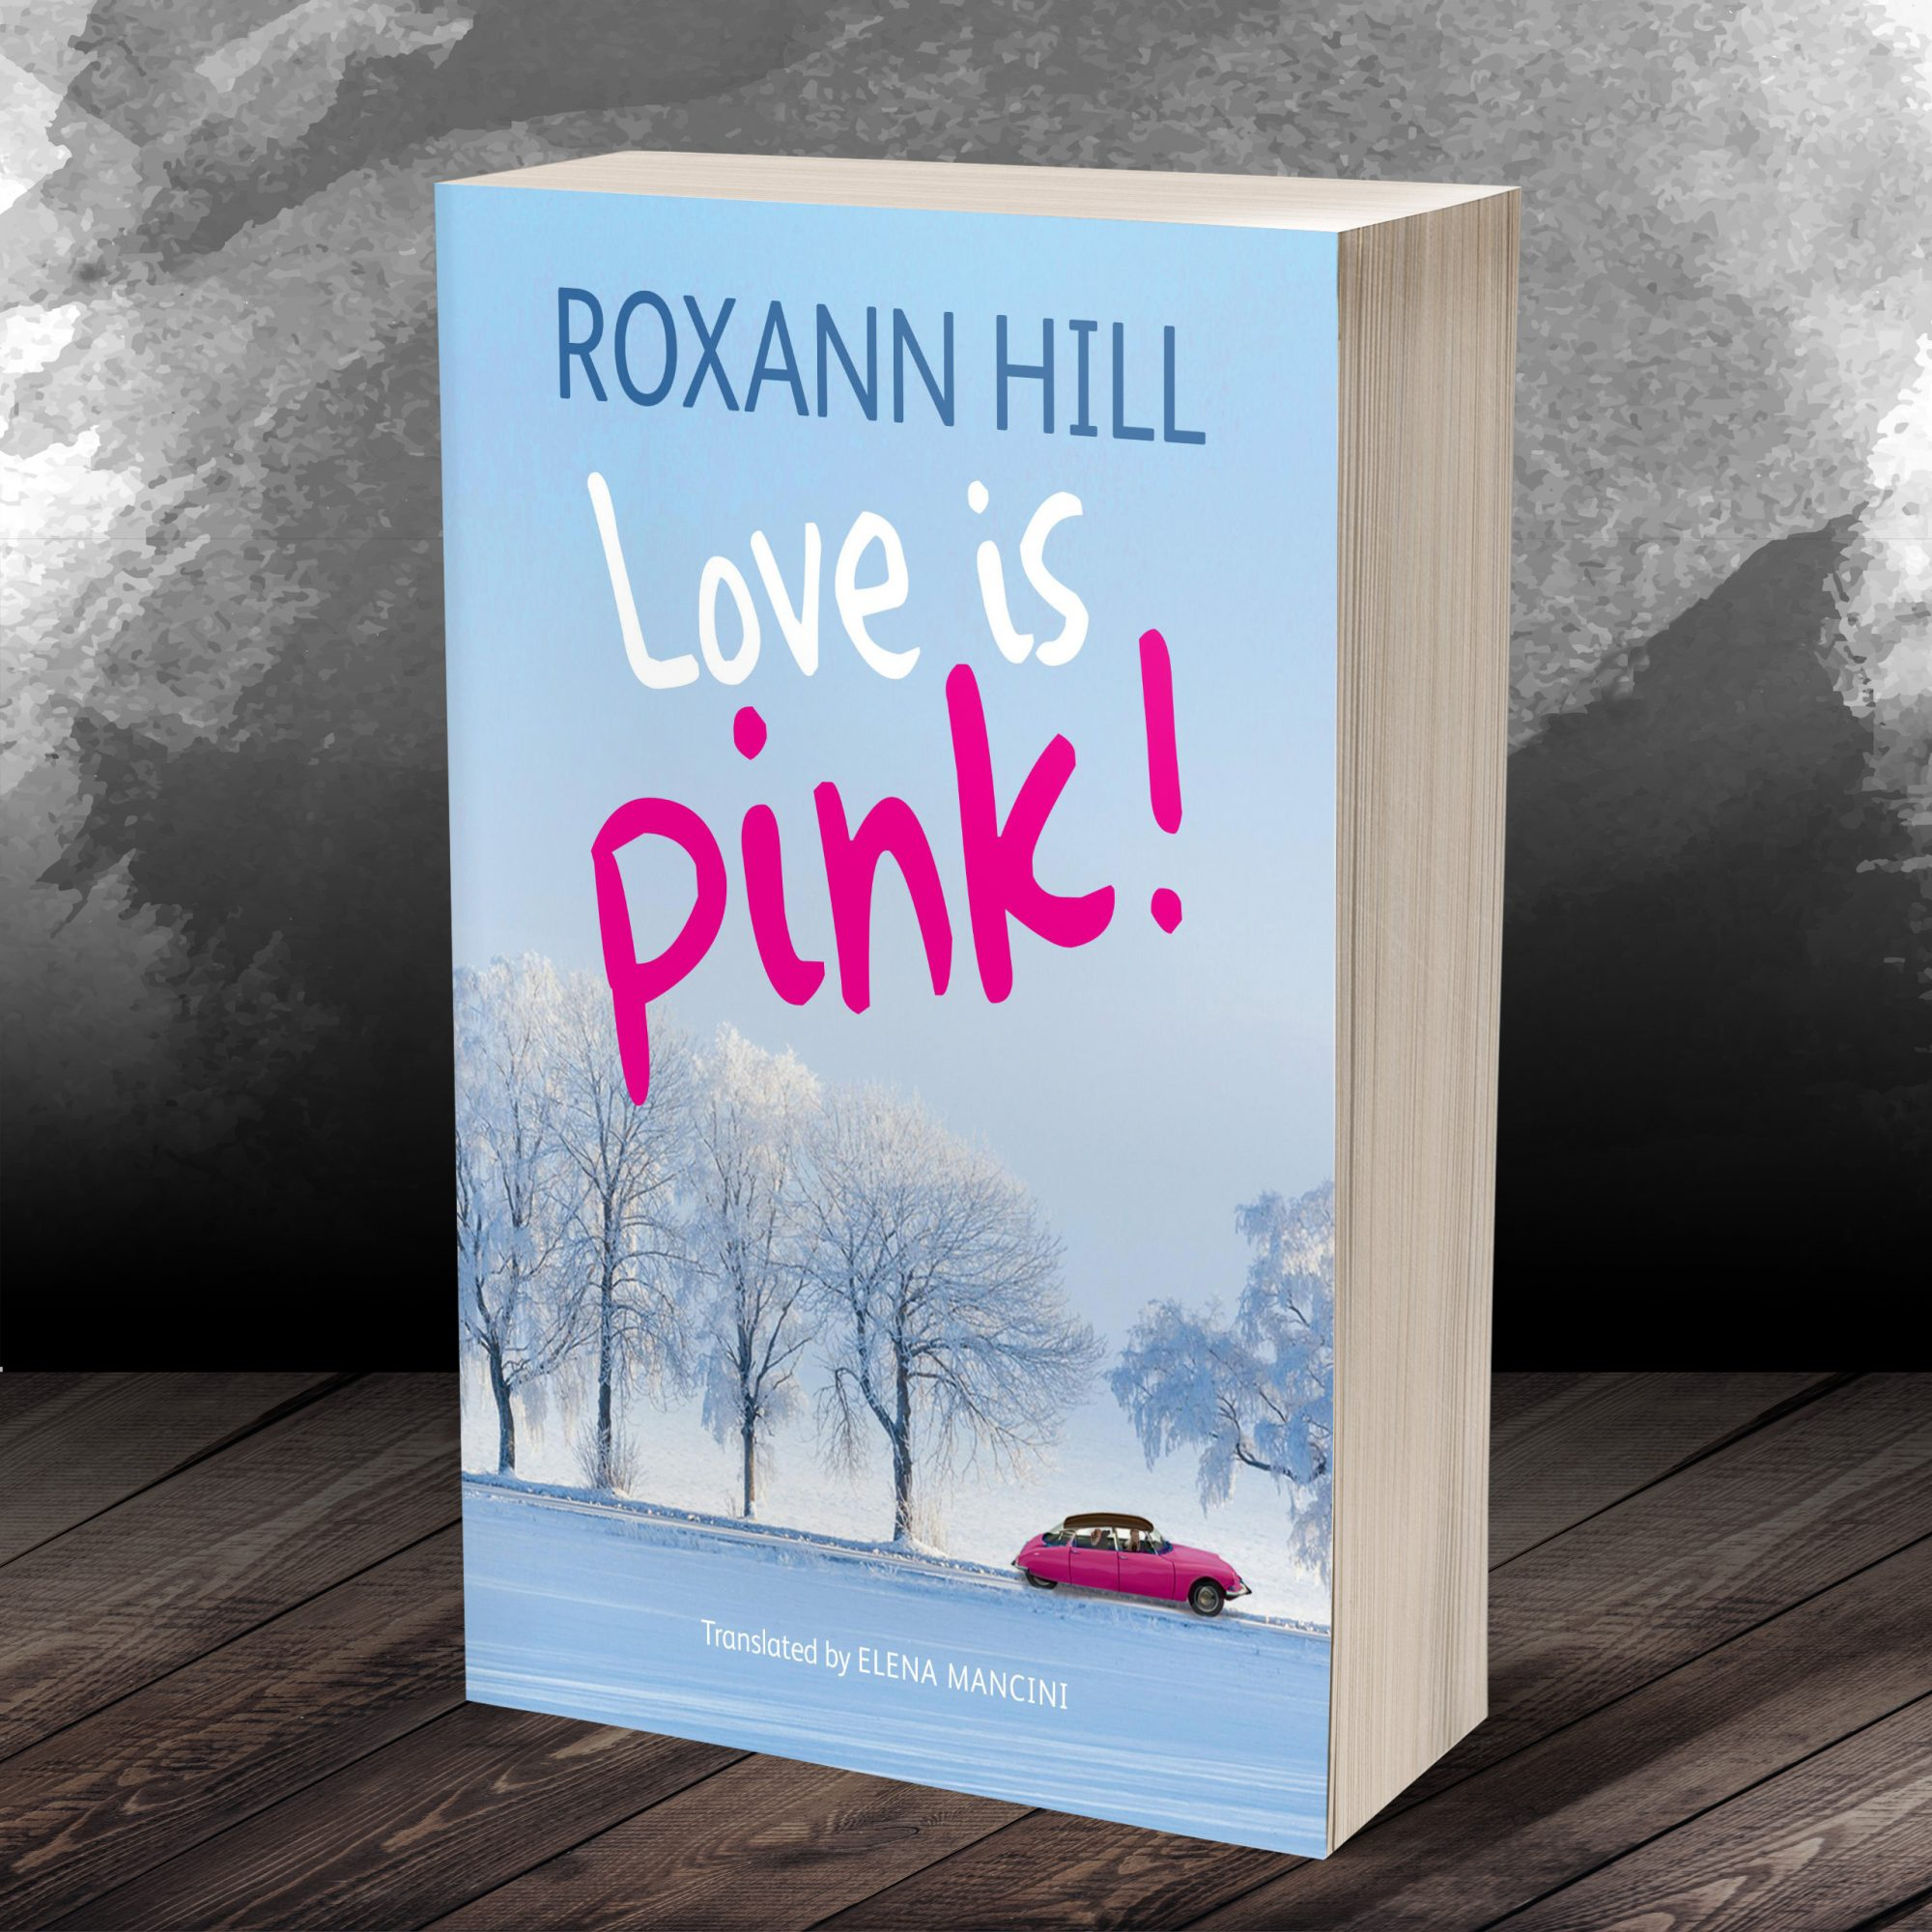 Roxann Hill: Love is pink!